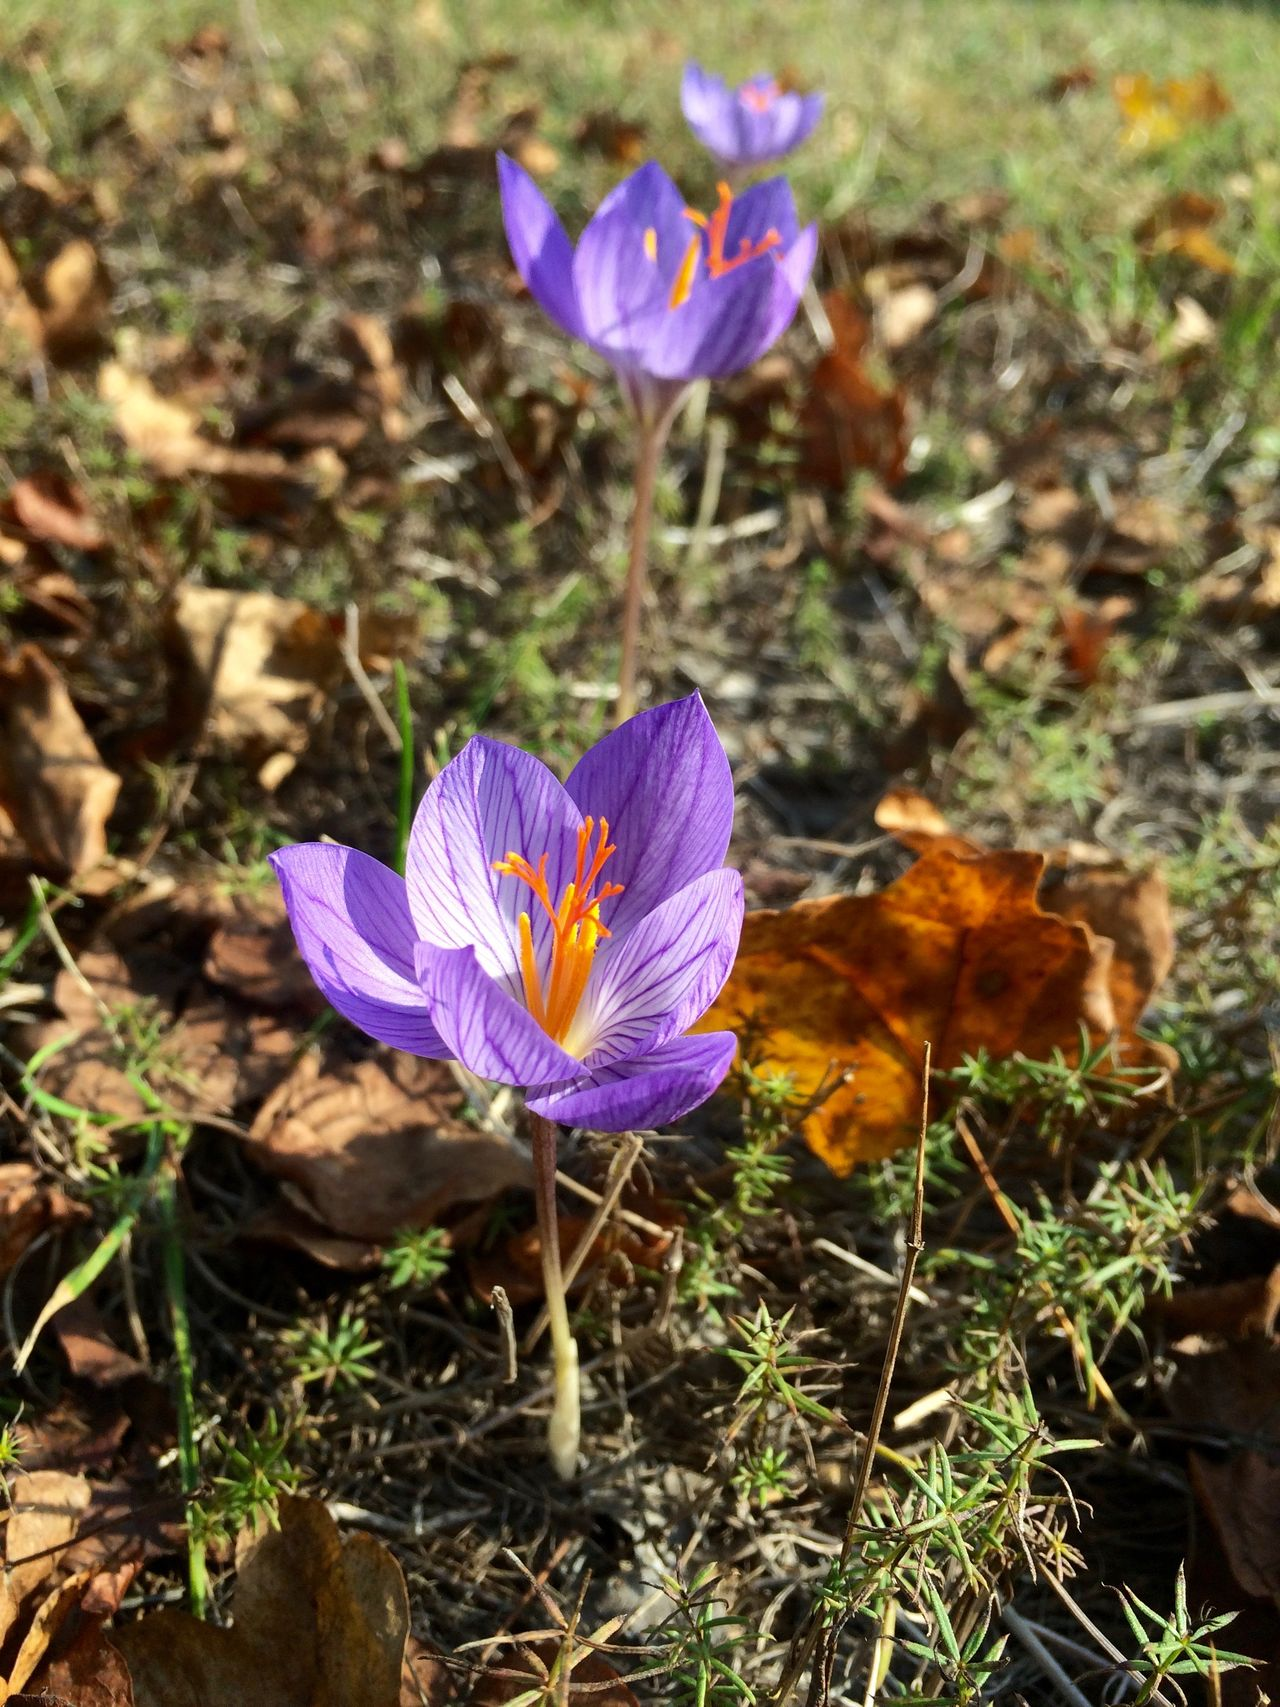 Autumn crocus! Autumn Colors Autumn Crocus Close-up Crocus Crocus Flower Flower Fragility Freshness Nature Outdoors Petal Plant Purple